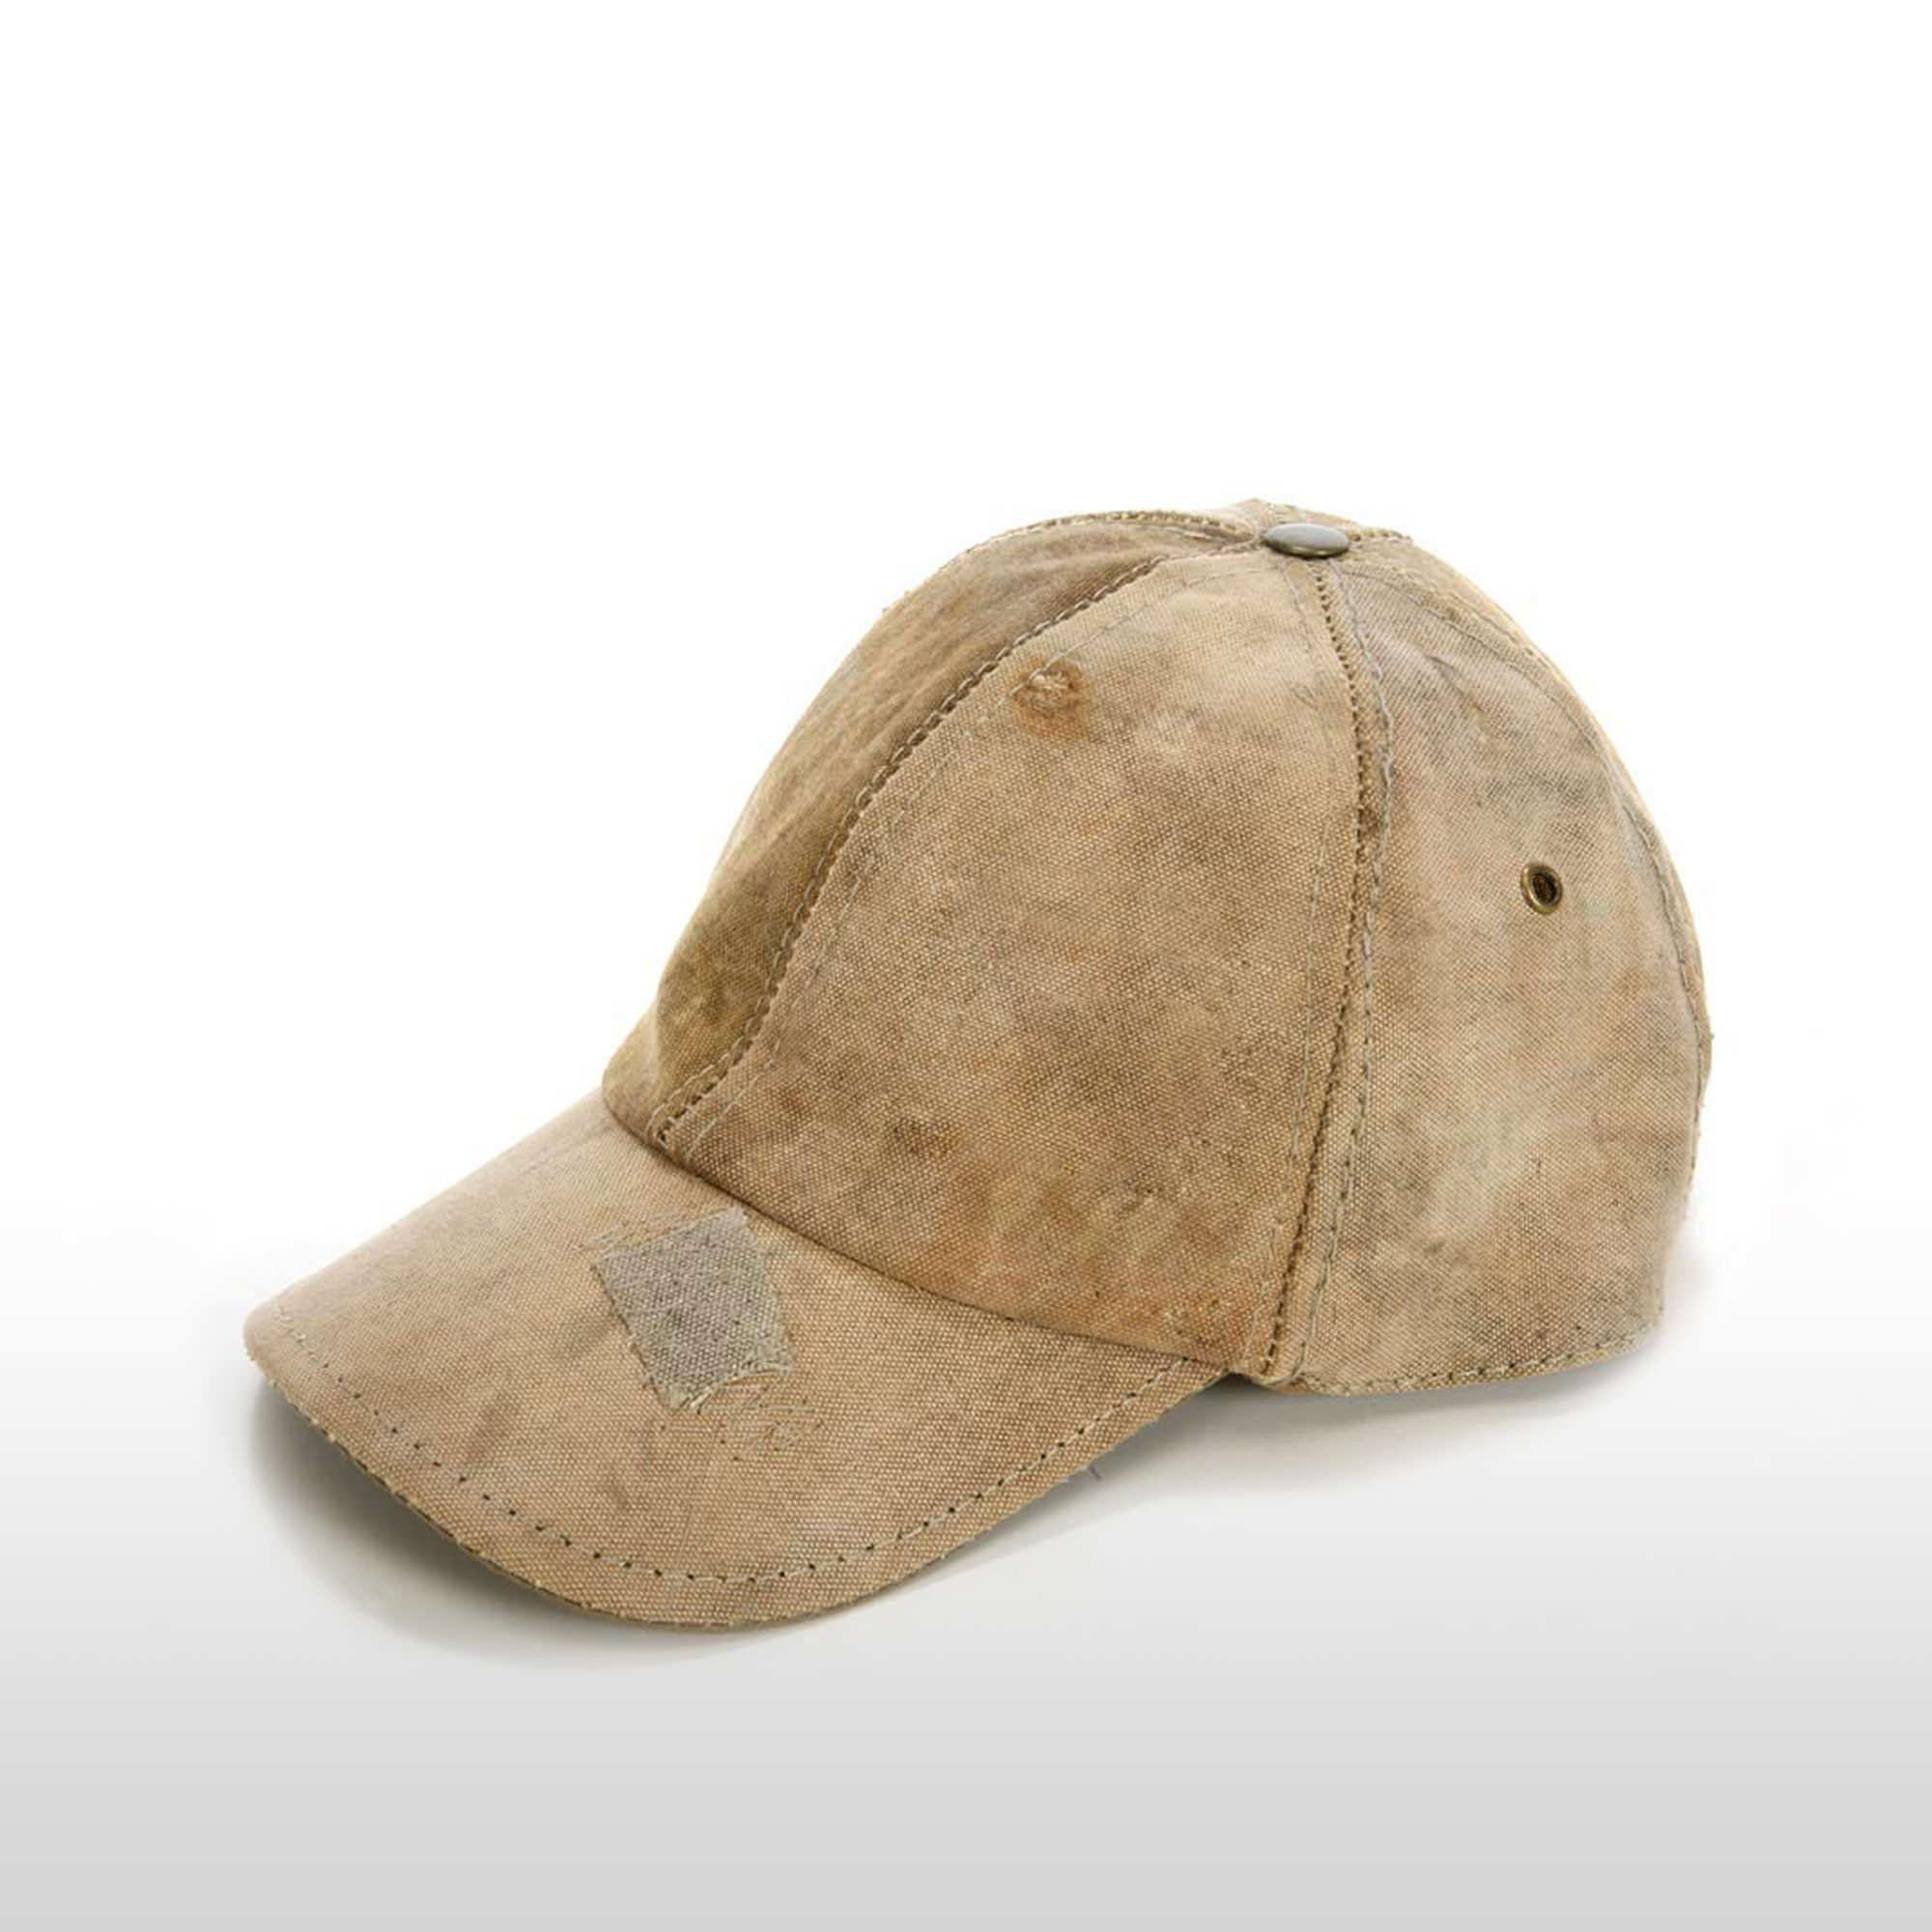 83f864b1c02 Real Deal Brazil The s Tan Recyceled Cotton Cavans Original Hat The Real  Deal Brazil